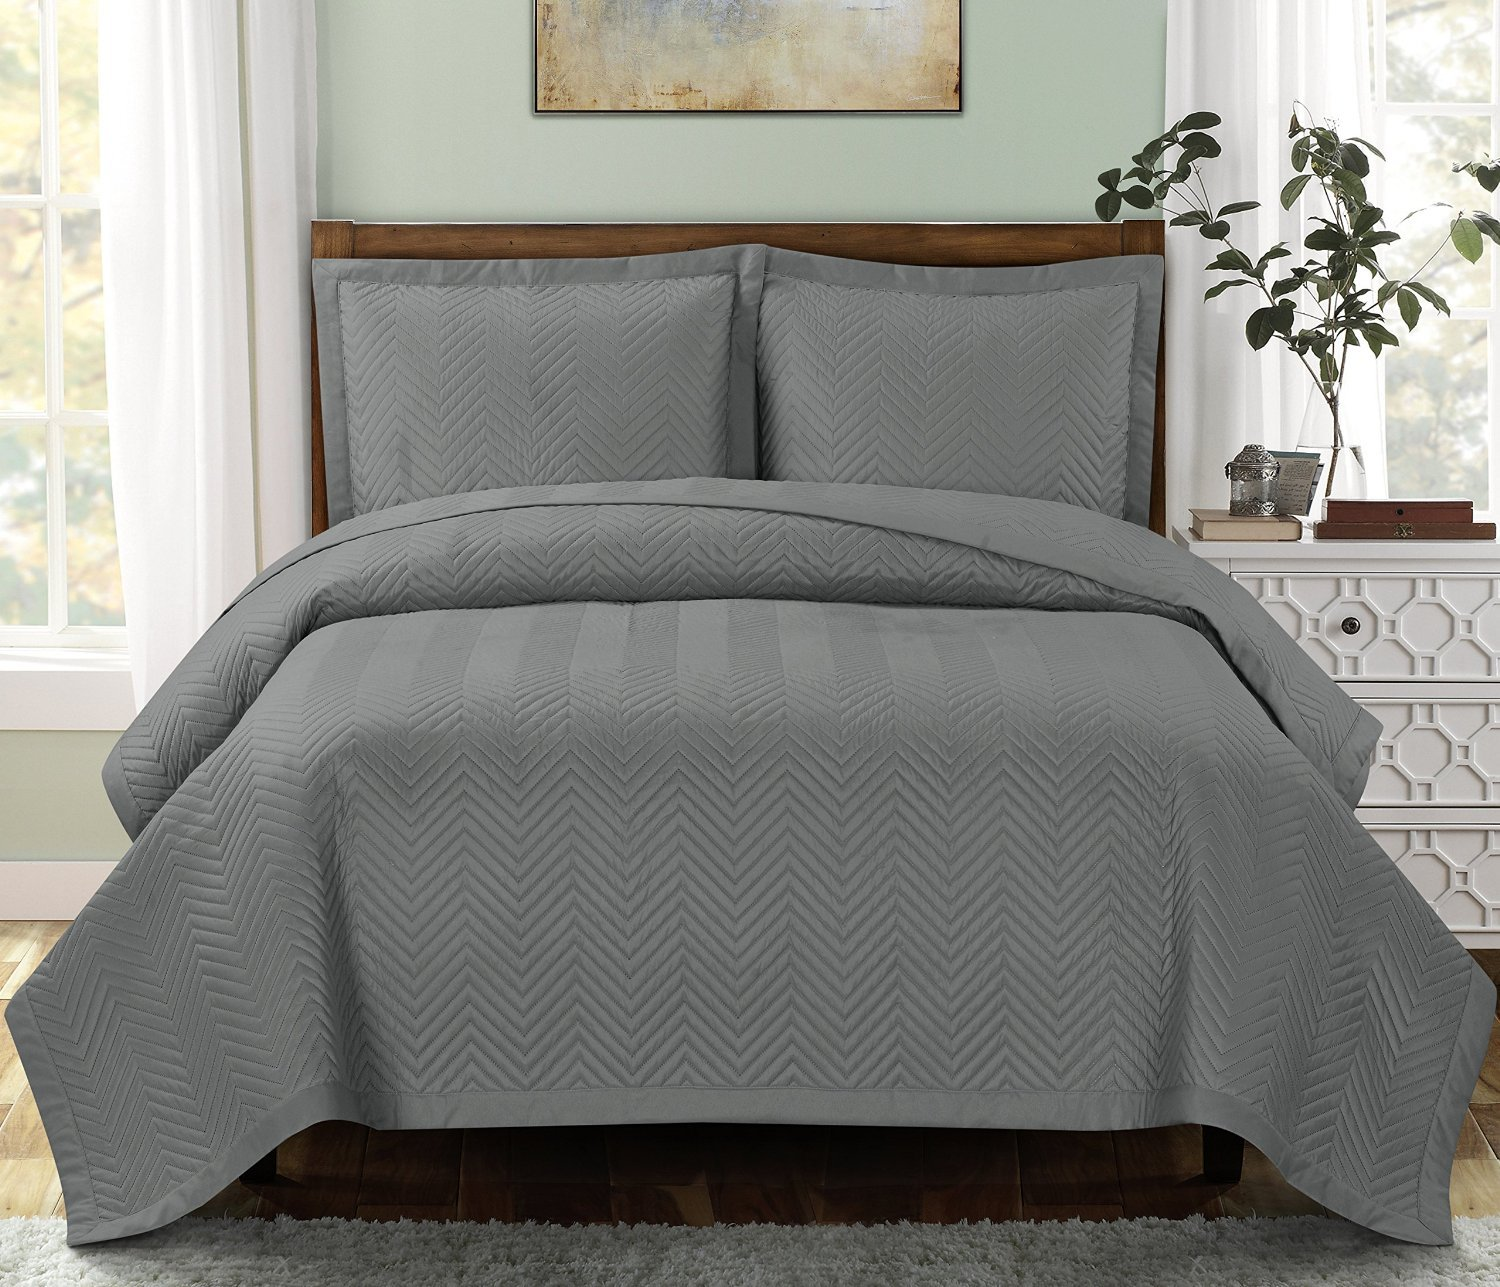 Chervon Gray Full / Queen size Coverlet 3pc set, Luxury Microfiber Embossed Print Quilted by Royal Hotel